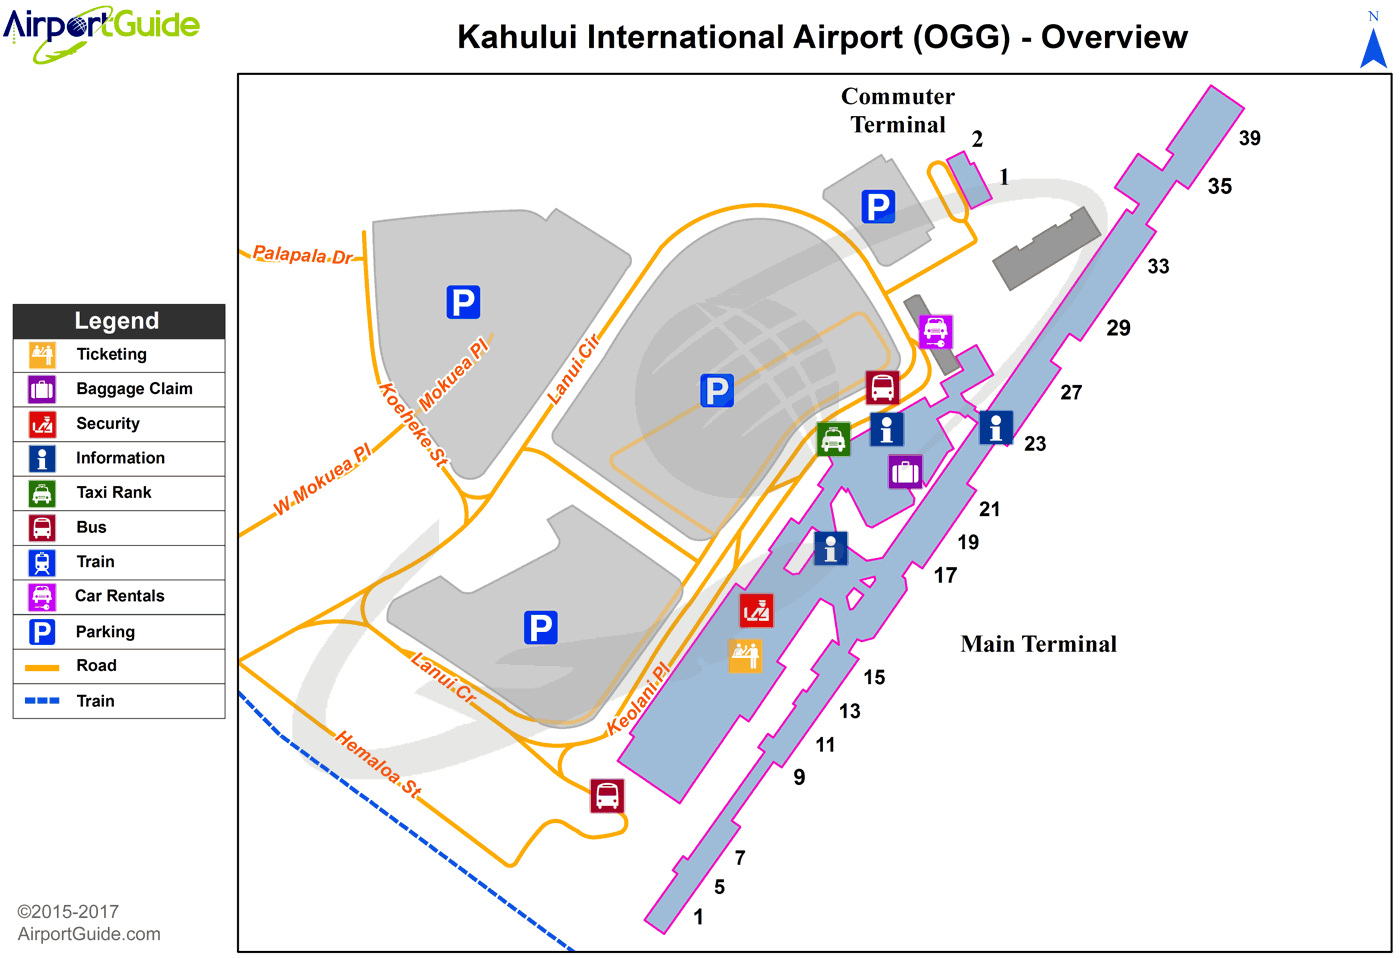 Kahului - Kahului (OGG) Airport Terminal Map - Overview ... on map of washington dulles airport terminals, map of houston hobby airport terminals, map of philadelphia airport terminals, map of las vegas airport terminals, map of fort lauderdale airport terminals, map of chicago airport terminals, map of dallas fort worth airport terminals, map of denver airport terminals, map of seattle airport terminals, map of san jose airport terminals, map of miami airport terminals, map of orlando airport terminals, map of oakland airport terminals, map of paris airport terminals, map of phoenix airport terminals, map of washington dc airport terminals, map of toronto airport terminals, map of salt lake city airport terminals, map of honolulu airport terminals, map of sacramento airport terminals,